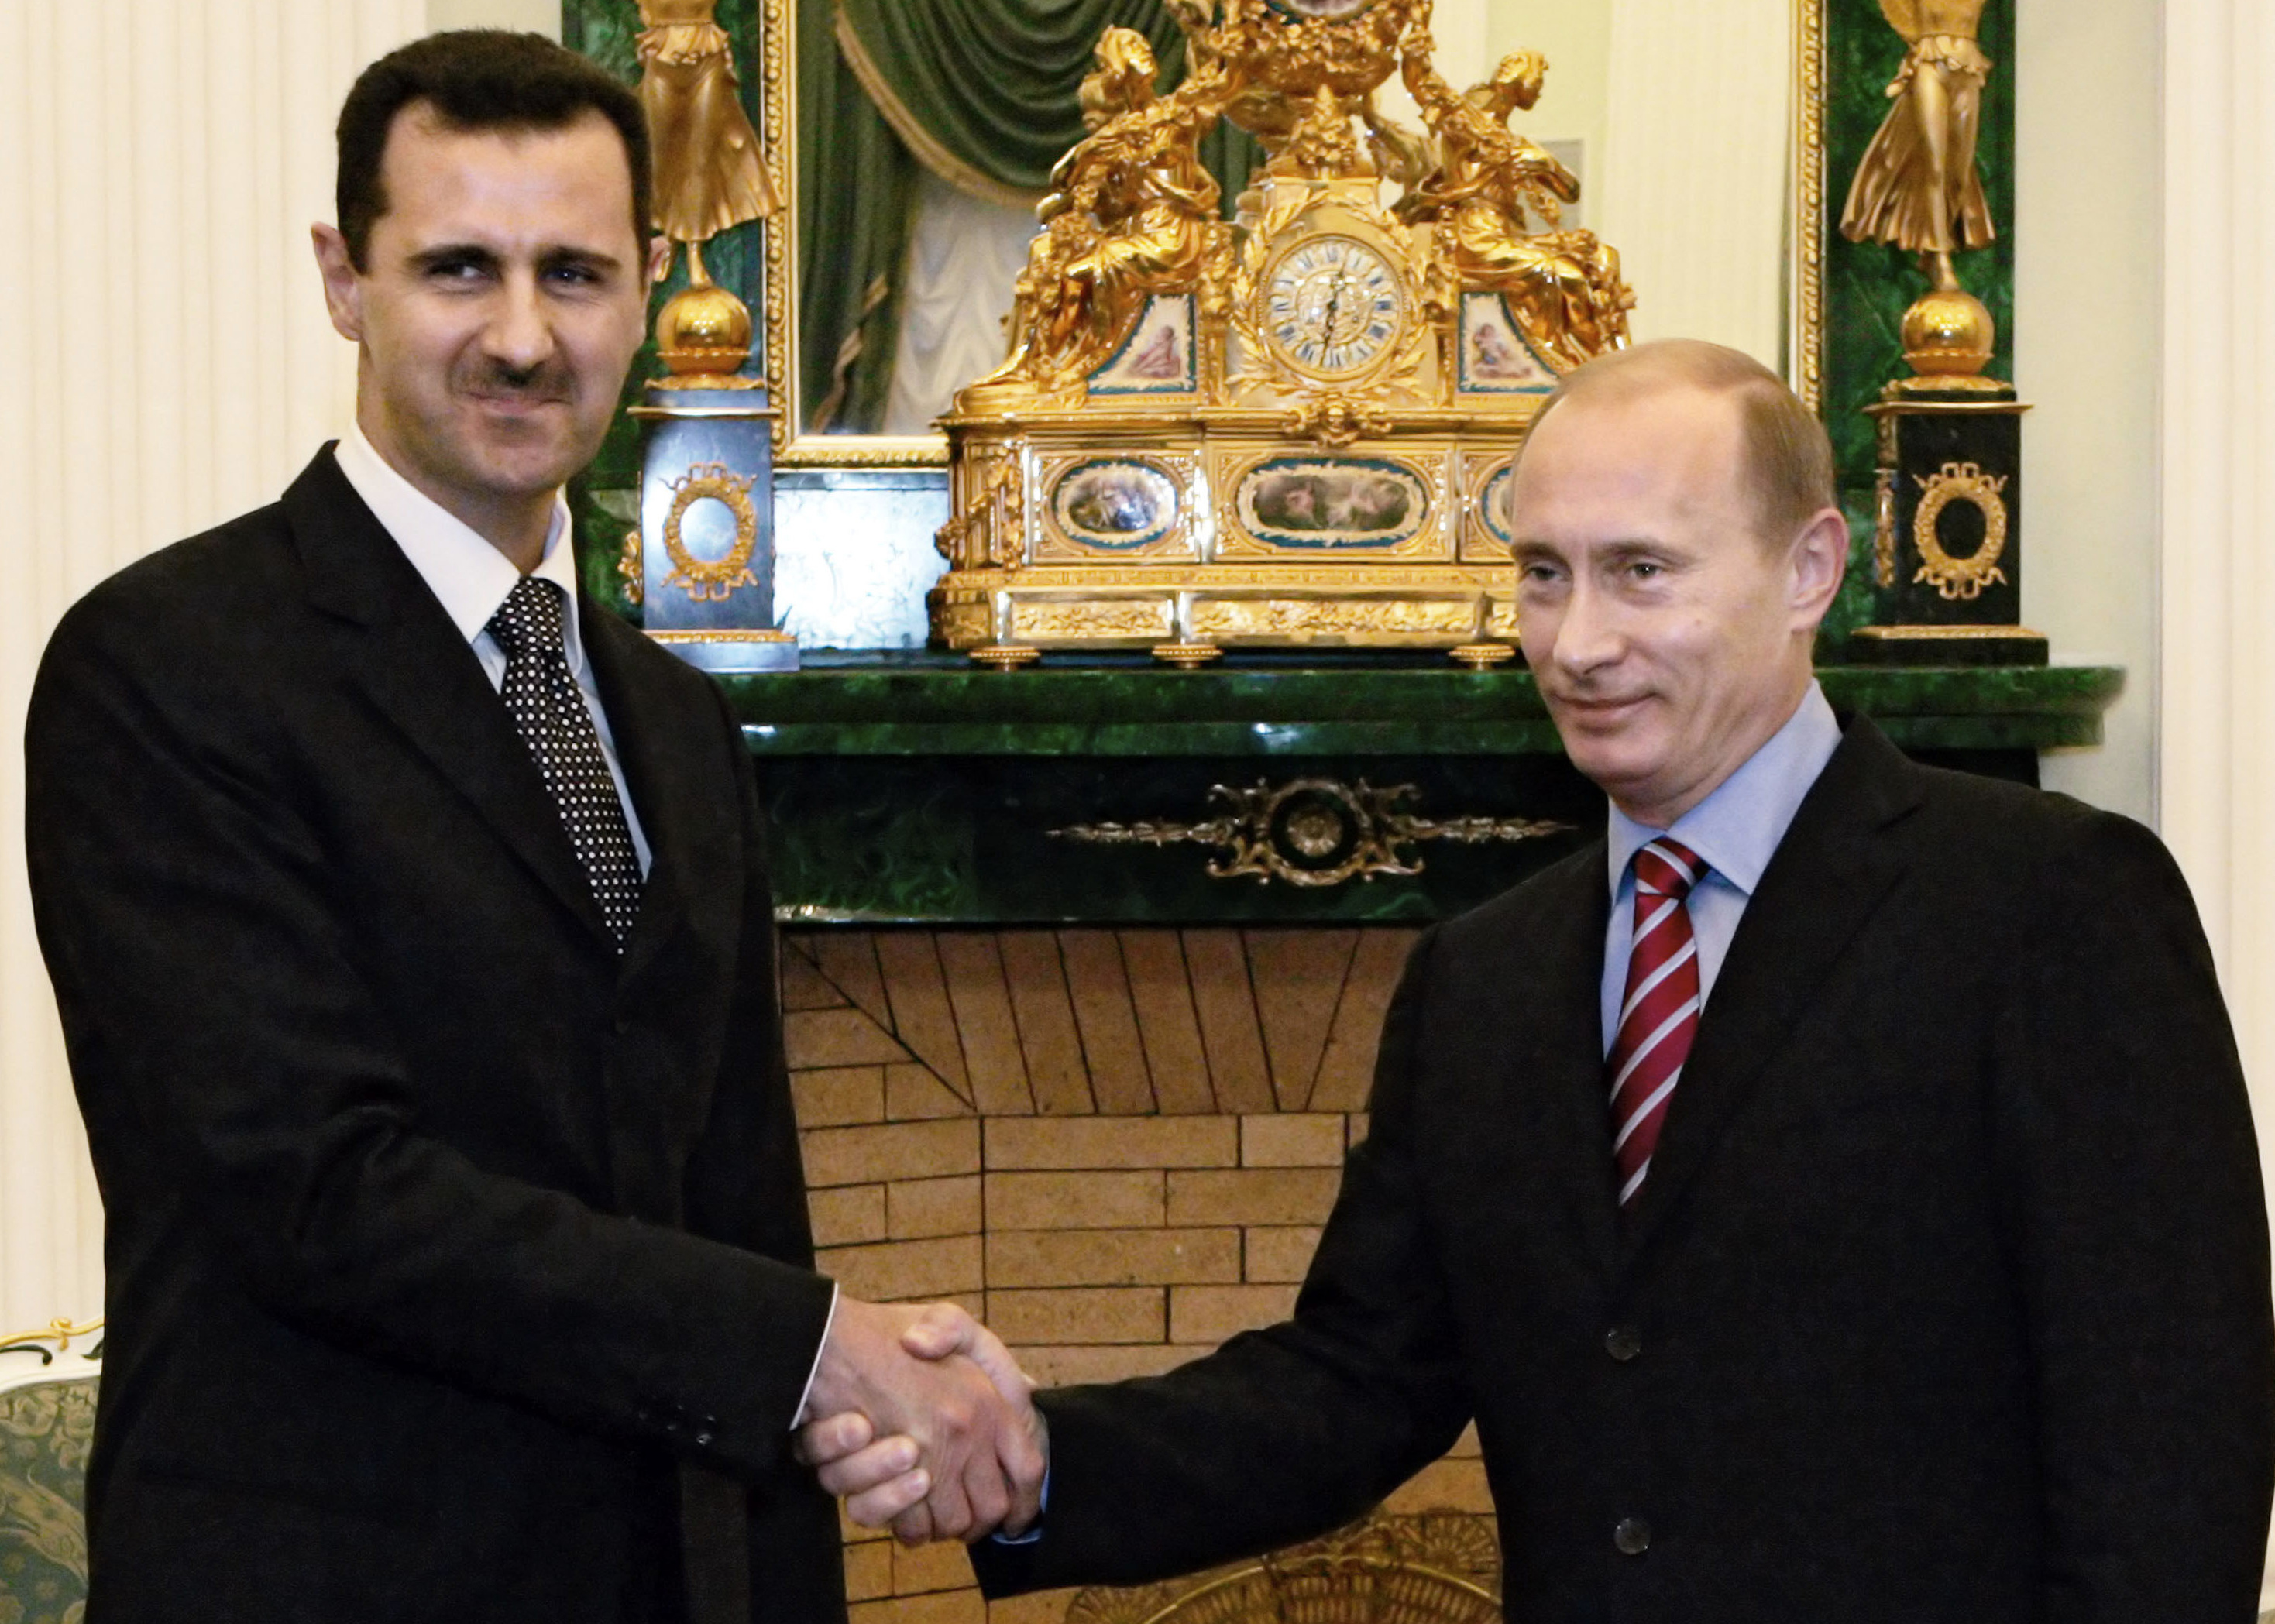 Who Are Syria's Friends And Why Are They Supporting Assad?